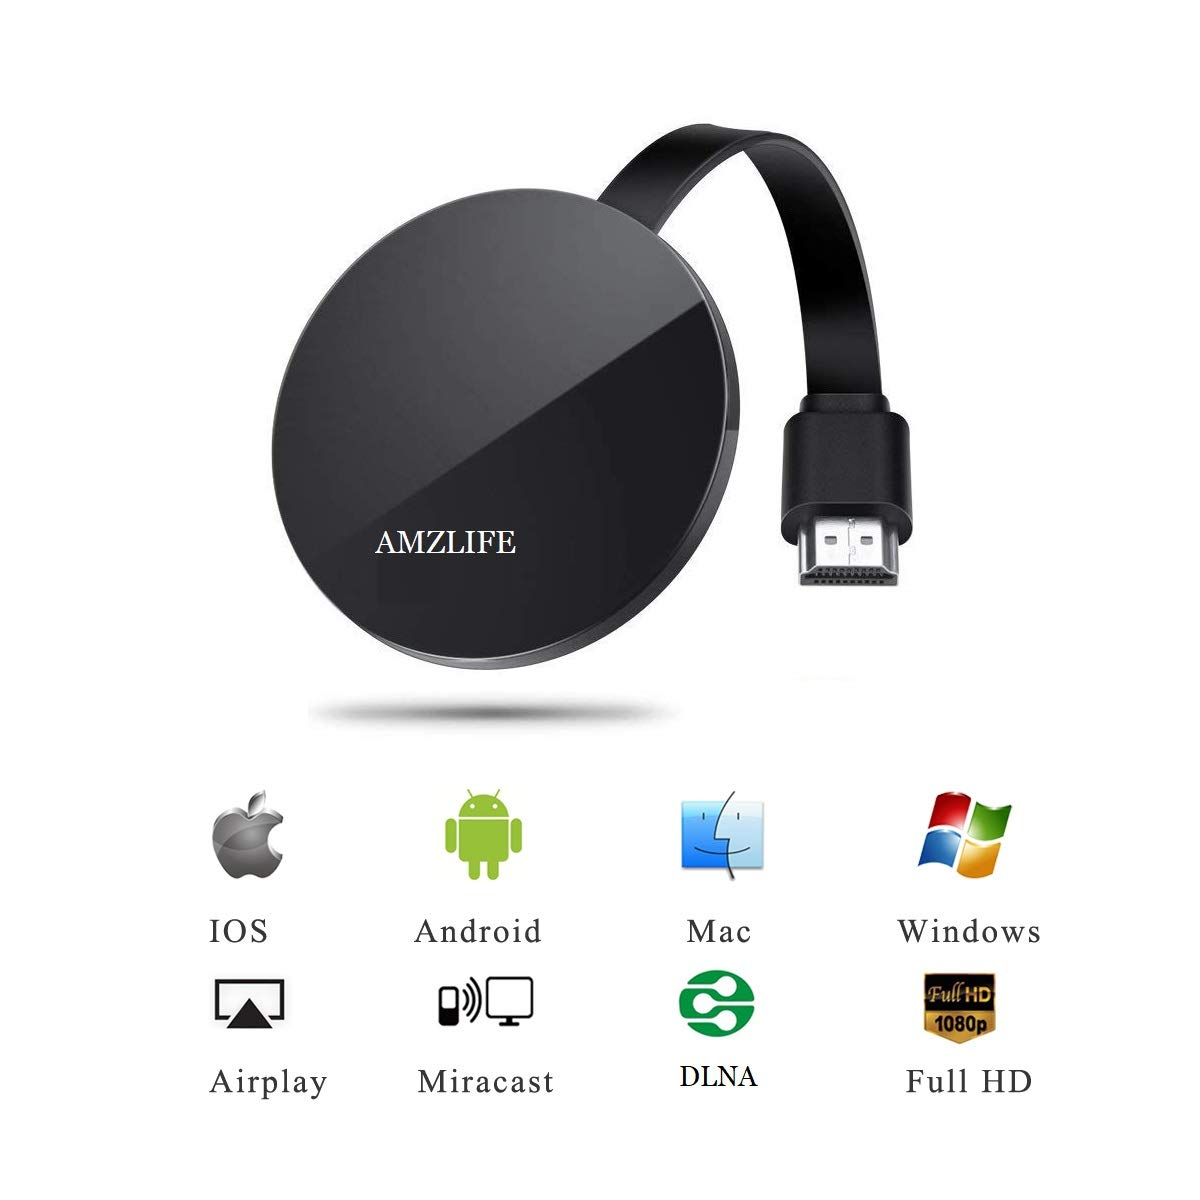 AMZLIFE Wireless Display Dongle WiFi Portable Display Receiver 1080P Mini Receiver Sharing HD Video HDMI Miracast Dongle Compatible with iOS iPhone iPad/Mac/Android Smartphones/Windows/TV/Laptop